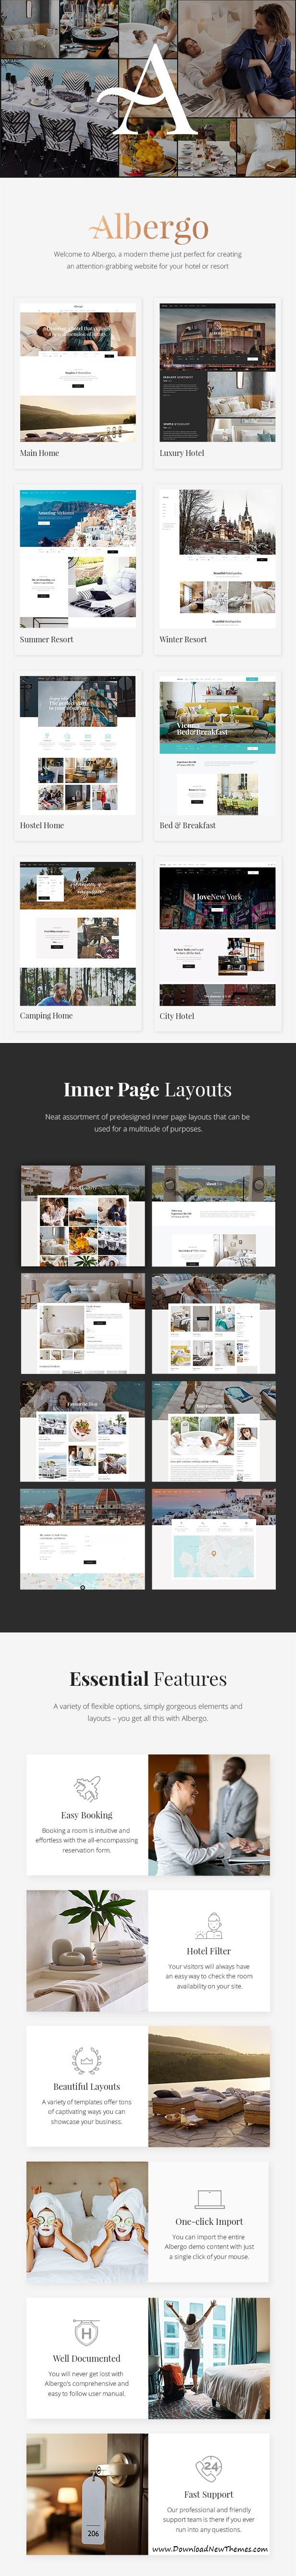 Albergo - A Modern Hotel and Accommodation Booking Theme | Template